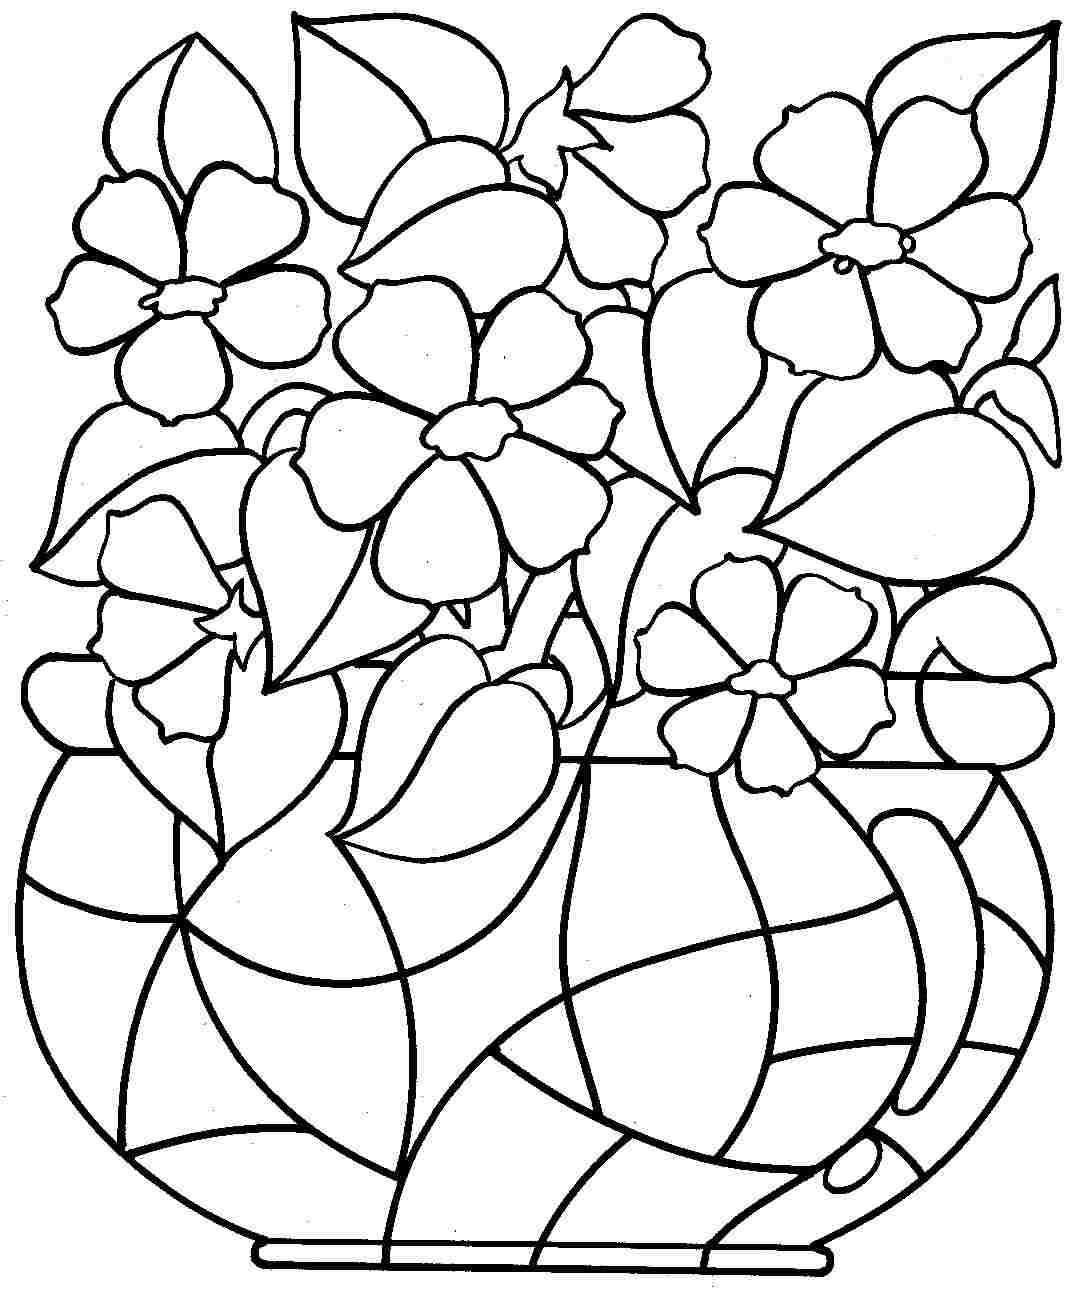 1078x1289 Flower Coloring Pages Free Print Out Flowers Simply Simple